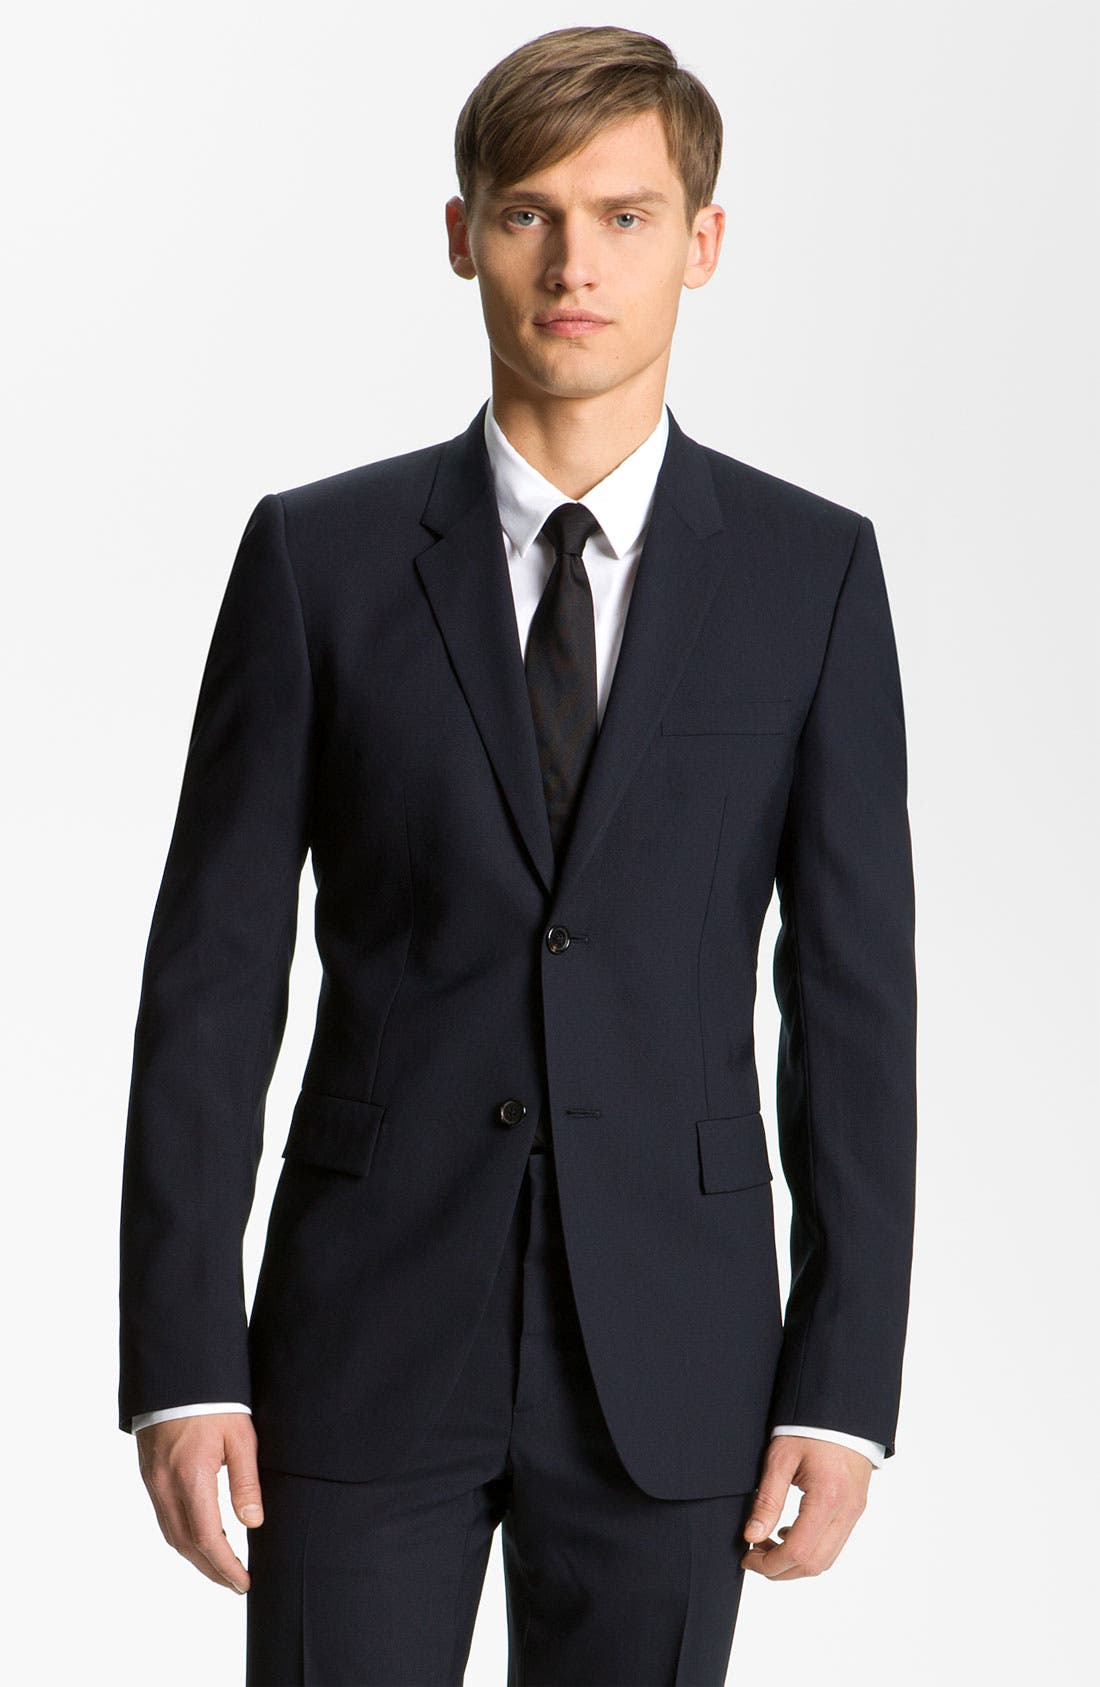 Alternate Image 1 Selected - Jil Sander Stretch Wool Blend Suit